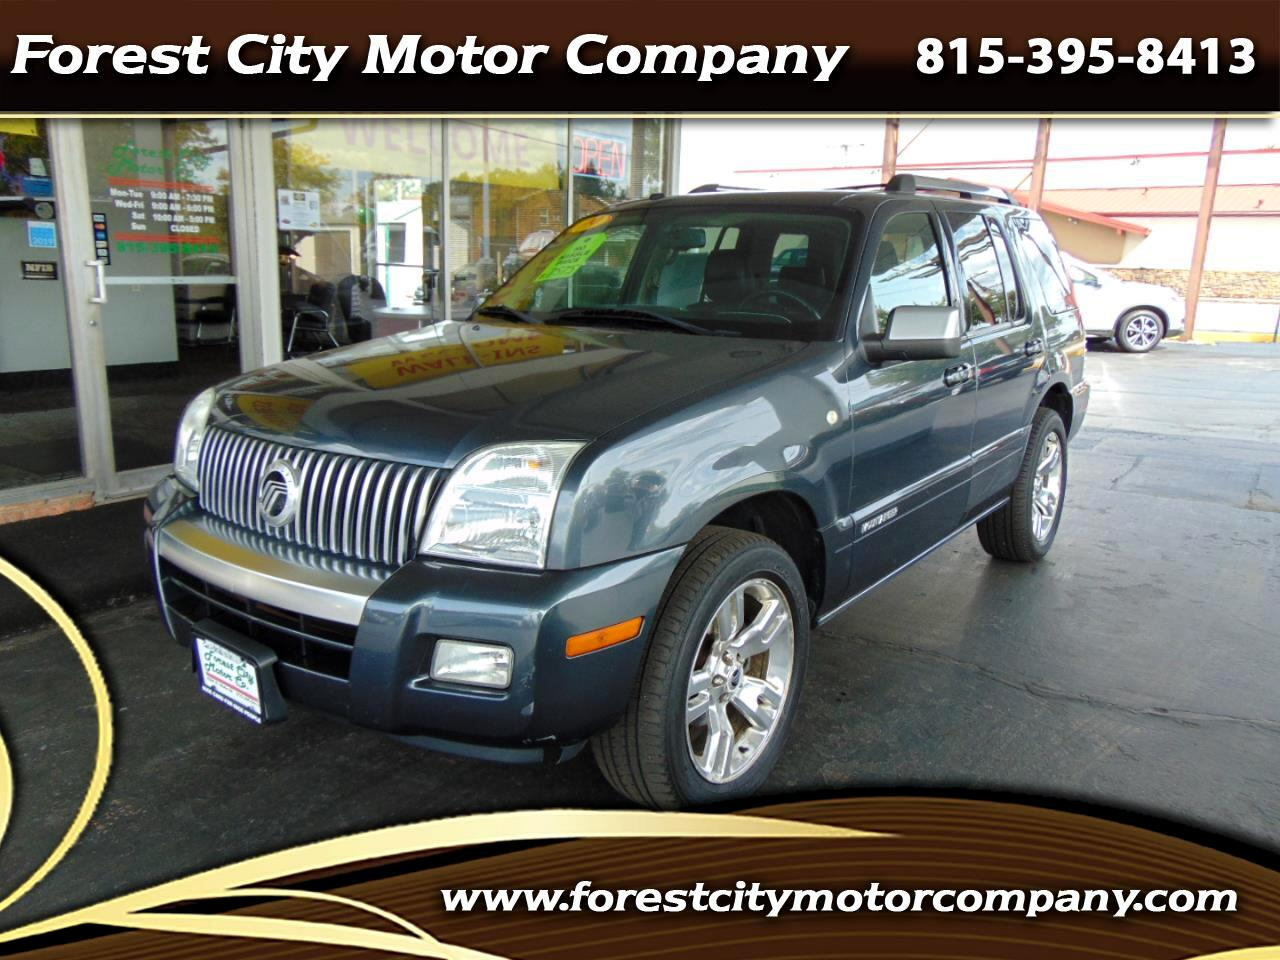 Mercury Mountaineer AWD 4dr V8 Premier 2009